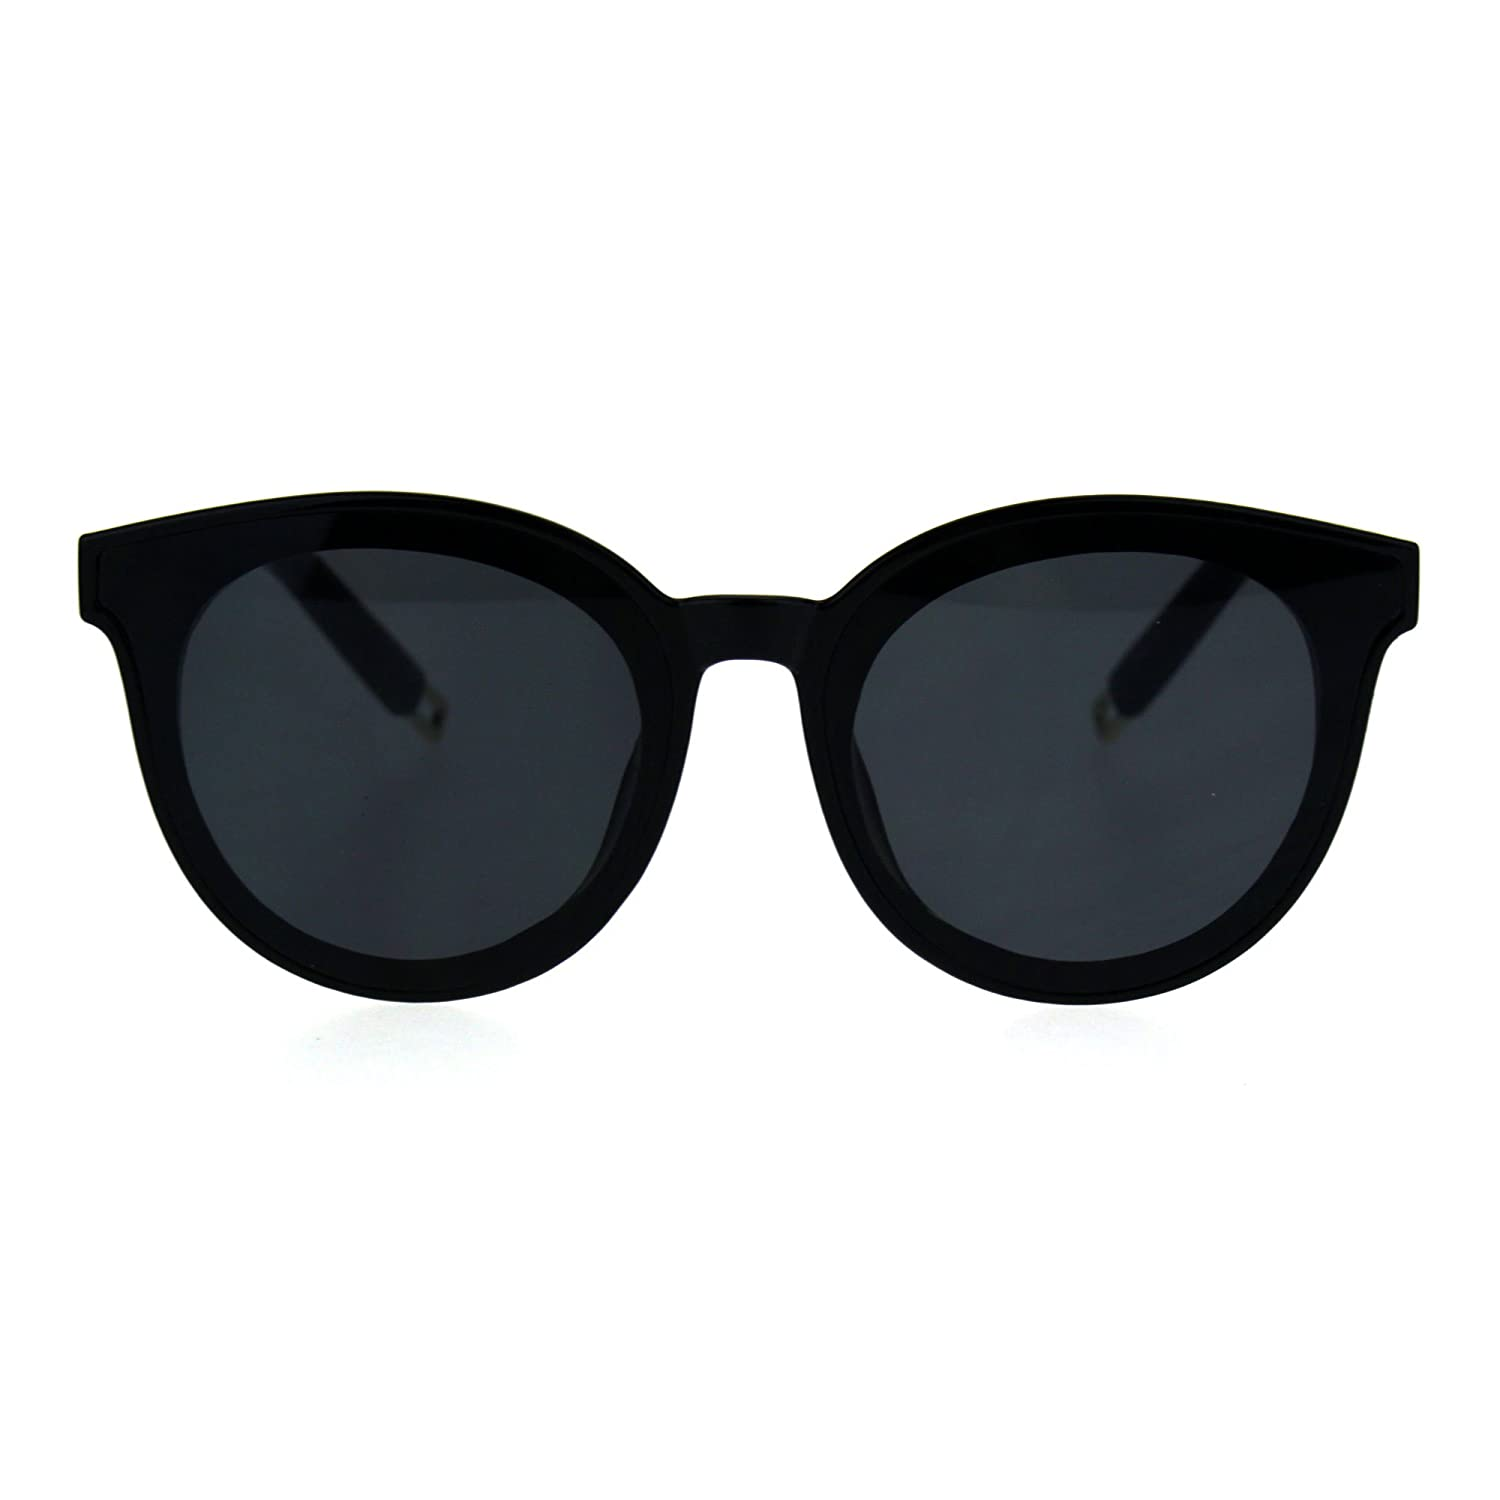 a51bcdd5ba6 Amazon.com  Hipster Plastic Horned Rim Mens Round Unisex Sunglasses Black   Clothing